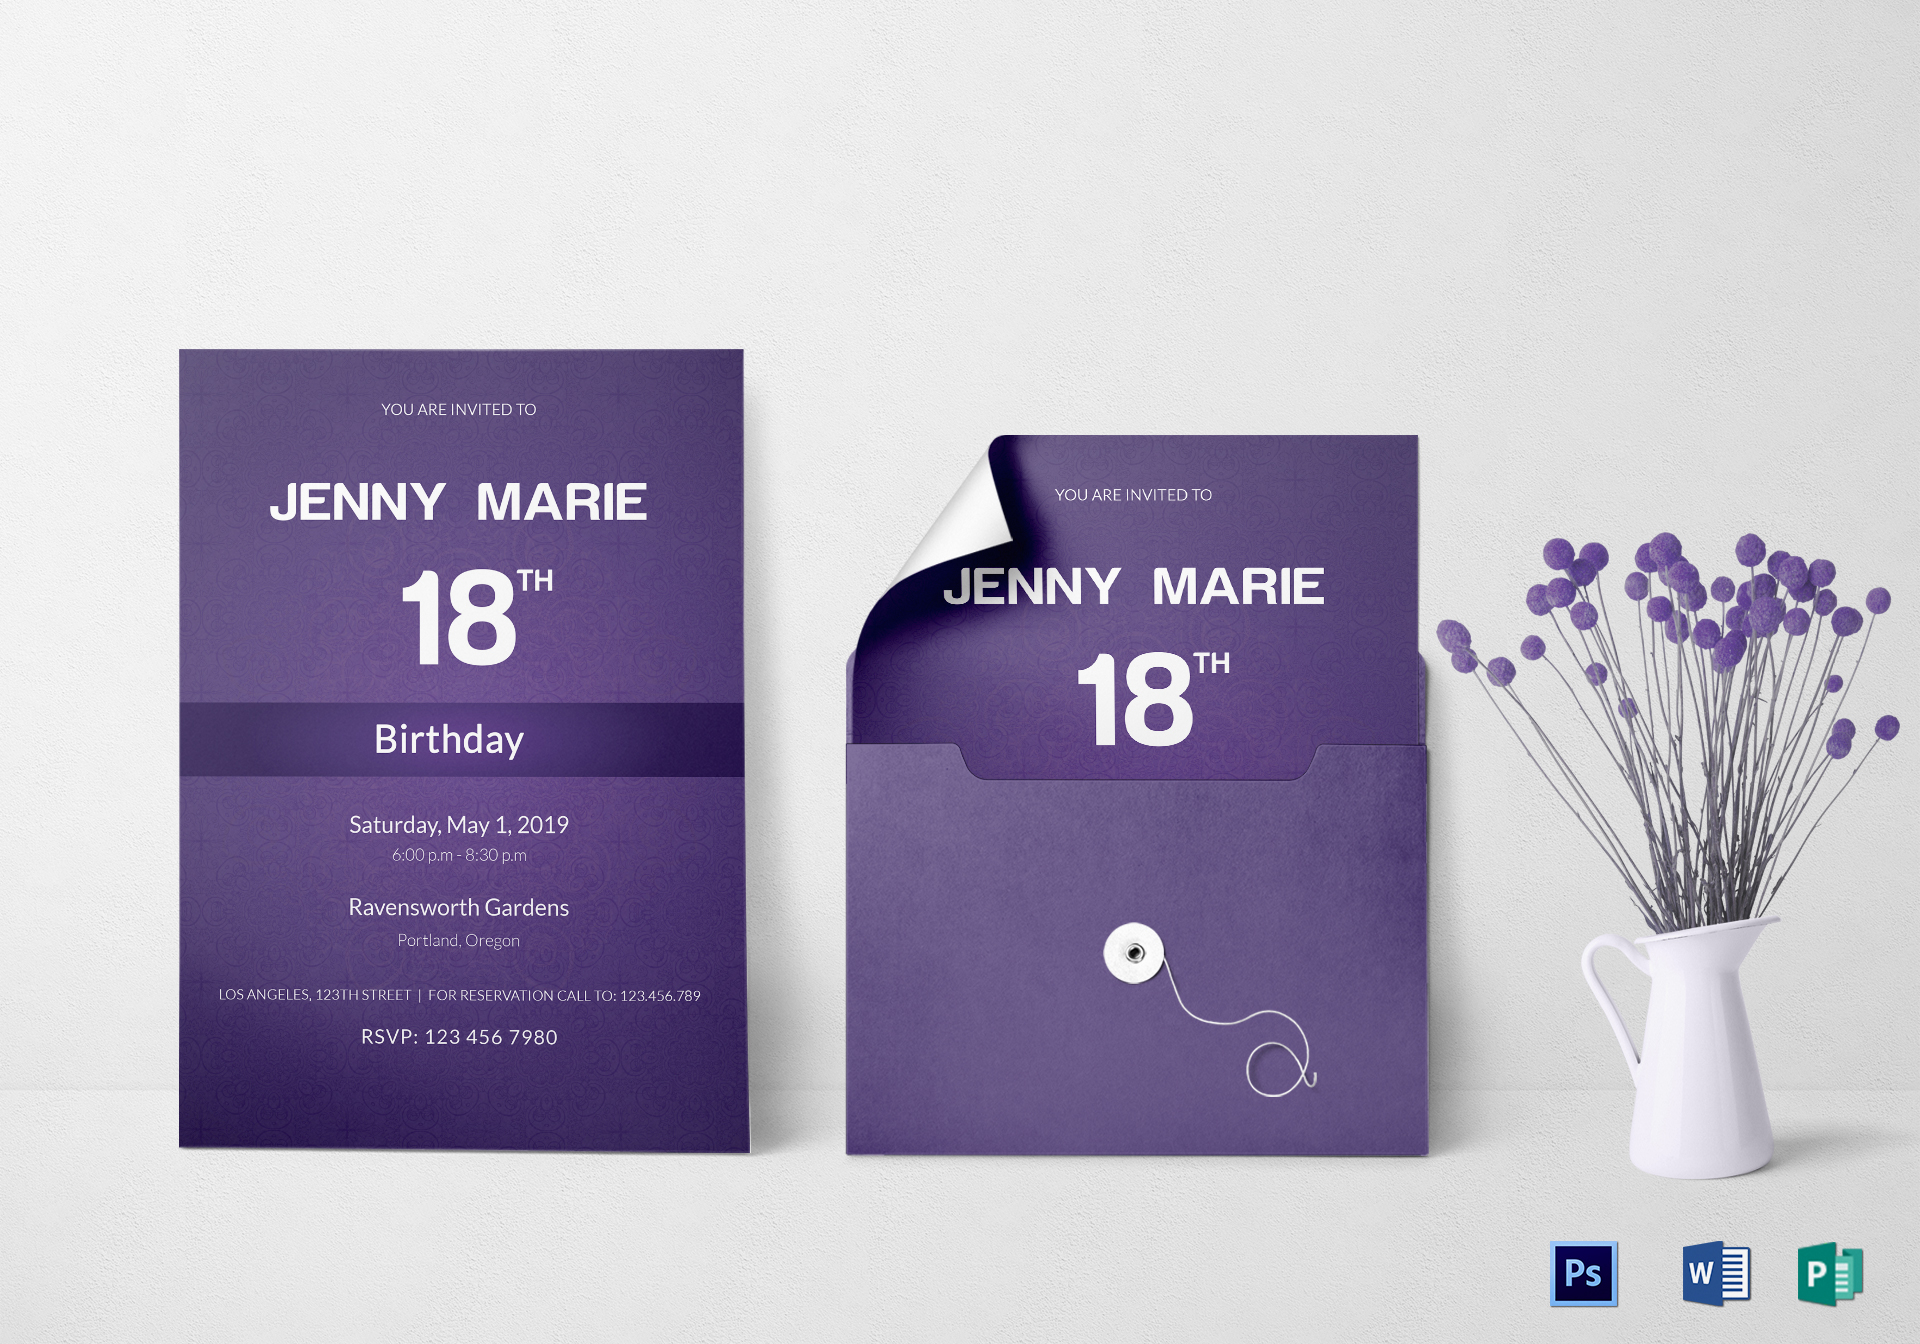 Luxurious Debut Event Invitation Card Template Debut Event Invitation Card Design Template Publisher Invitation Card Templates Free Invitation Card Template Microsoft Word wedding invitation Invitation Card Template